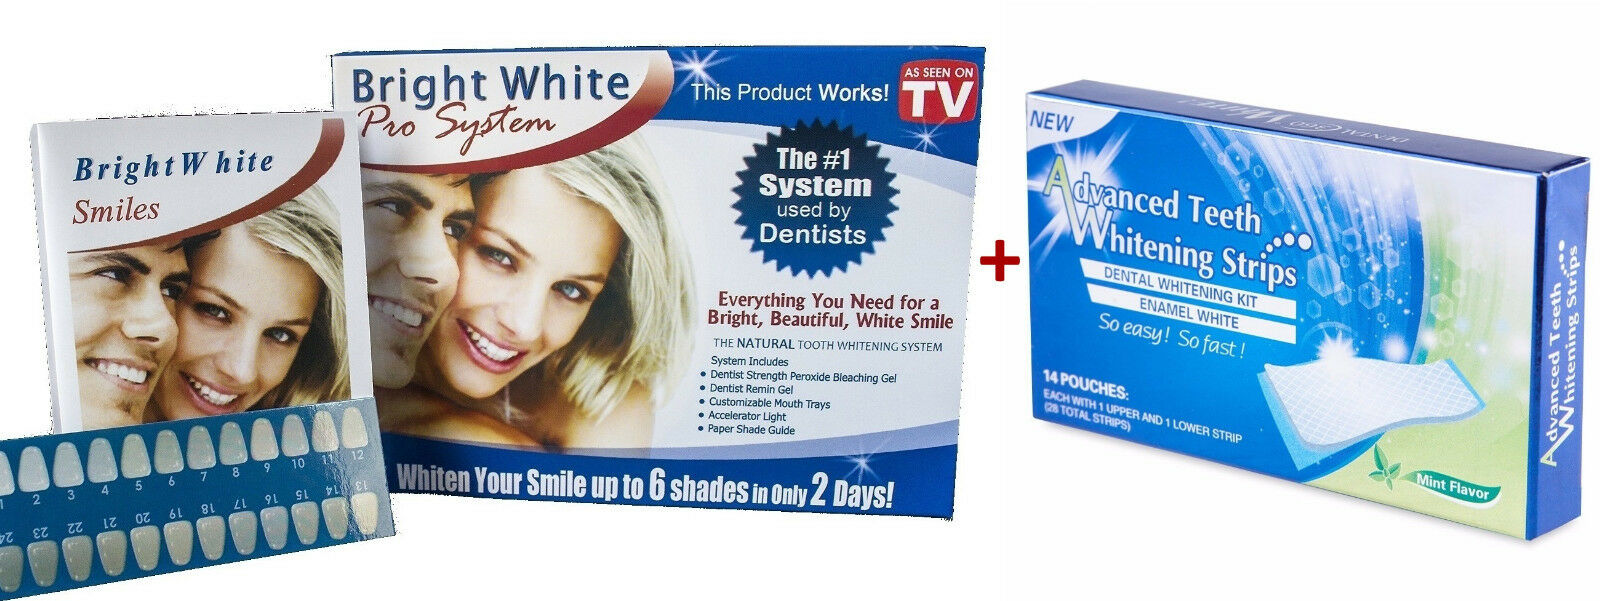 impressive bright white smile teeth whitening kit advanced